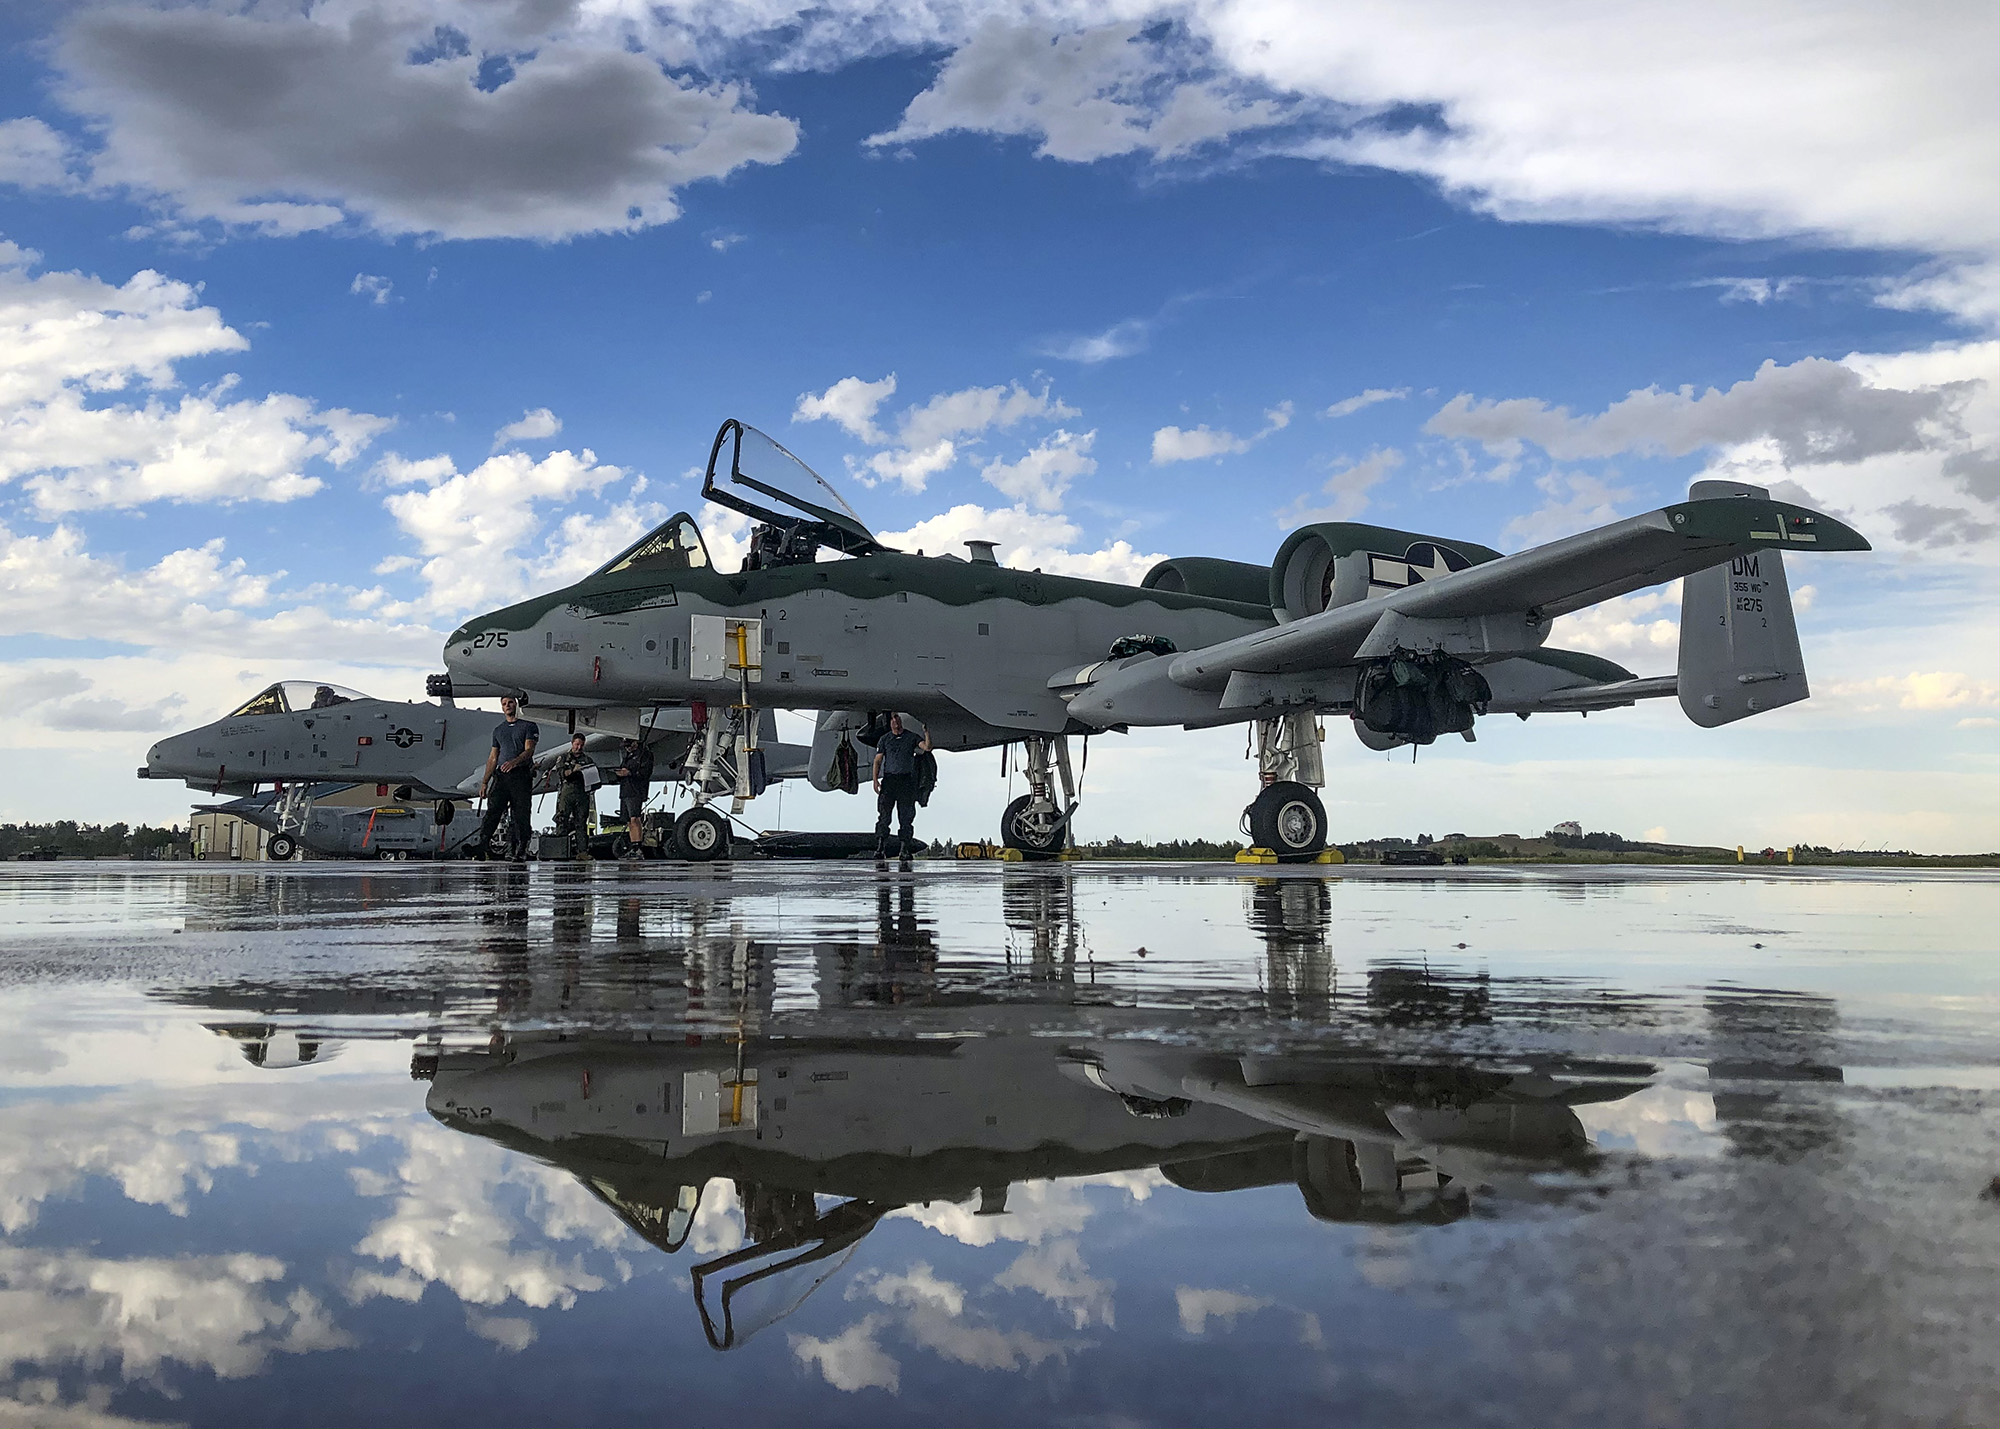 A-10 Thunderbolt IIs, assigned to the A-10 Demonstration Team, sit on the flightline at Cheyenne Air National Guard Base, Wyo., July 20, 2020. (Senior Airman Kristine Legate/Air Force)